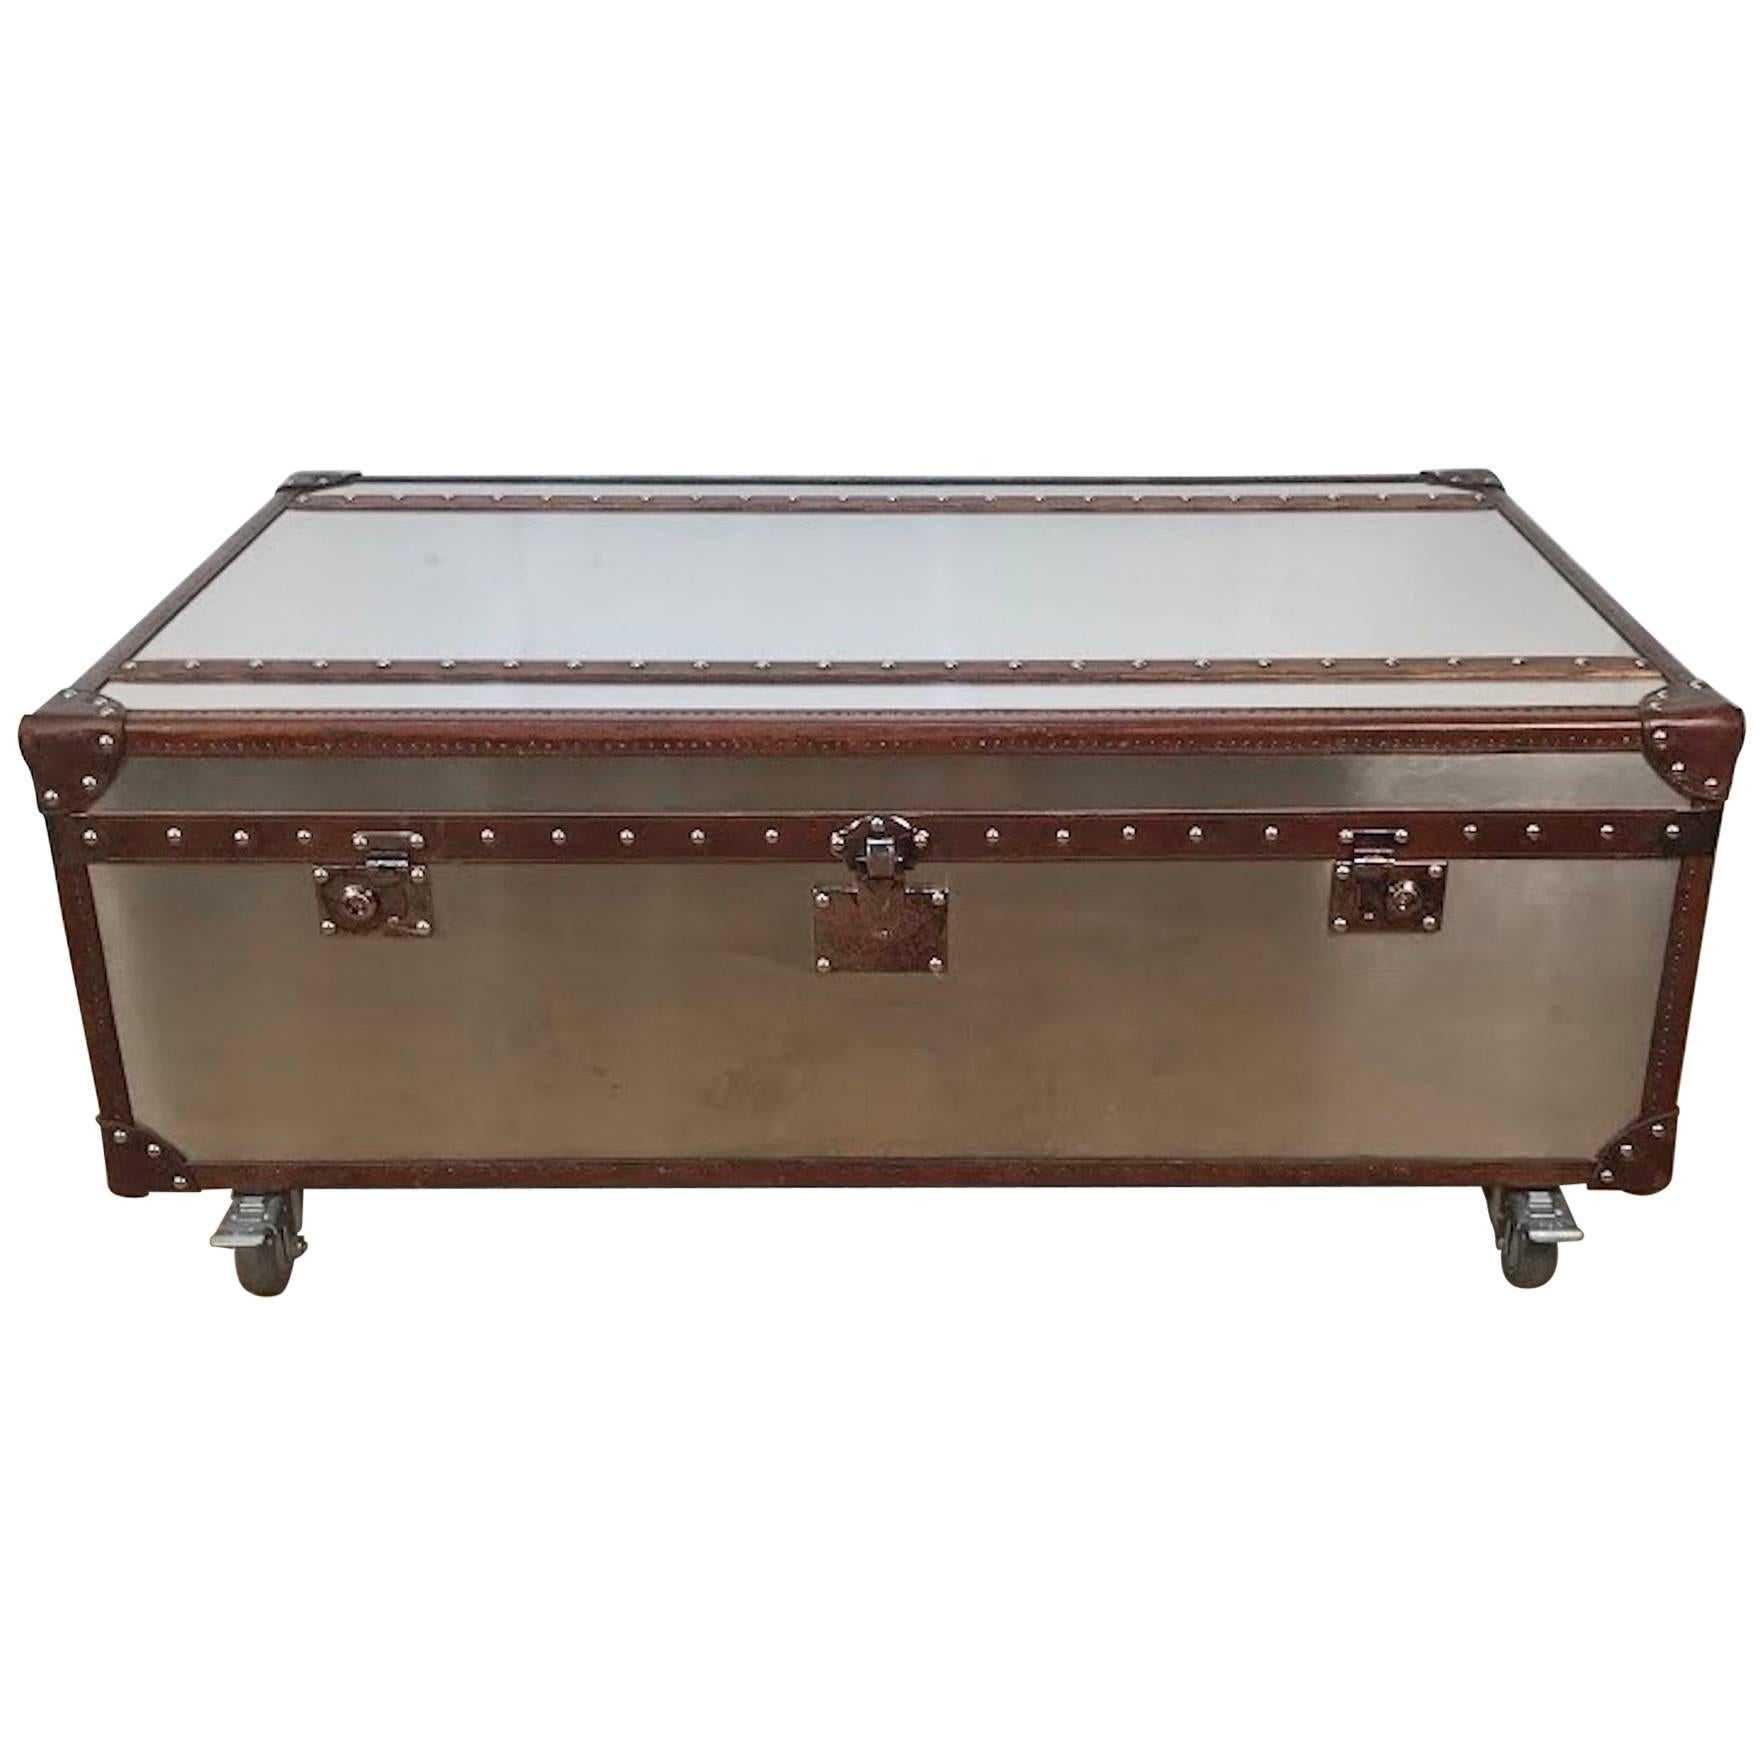 Stainless Steel And Leather Bound Trunk Coffee Table With Two Side Drawers  For Sale